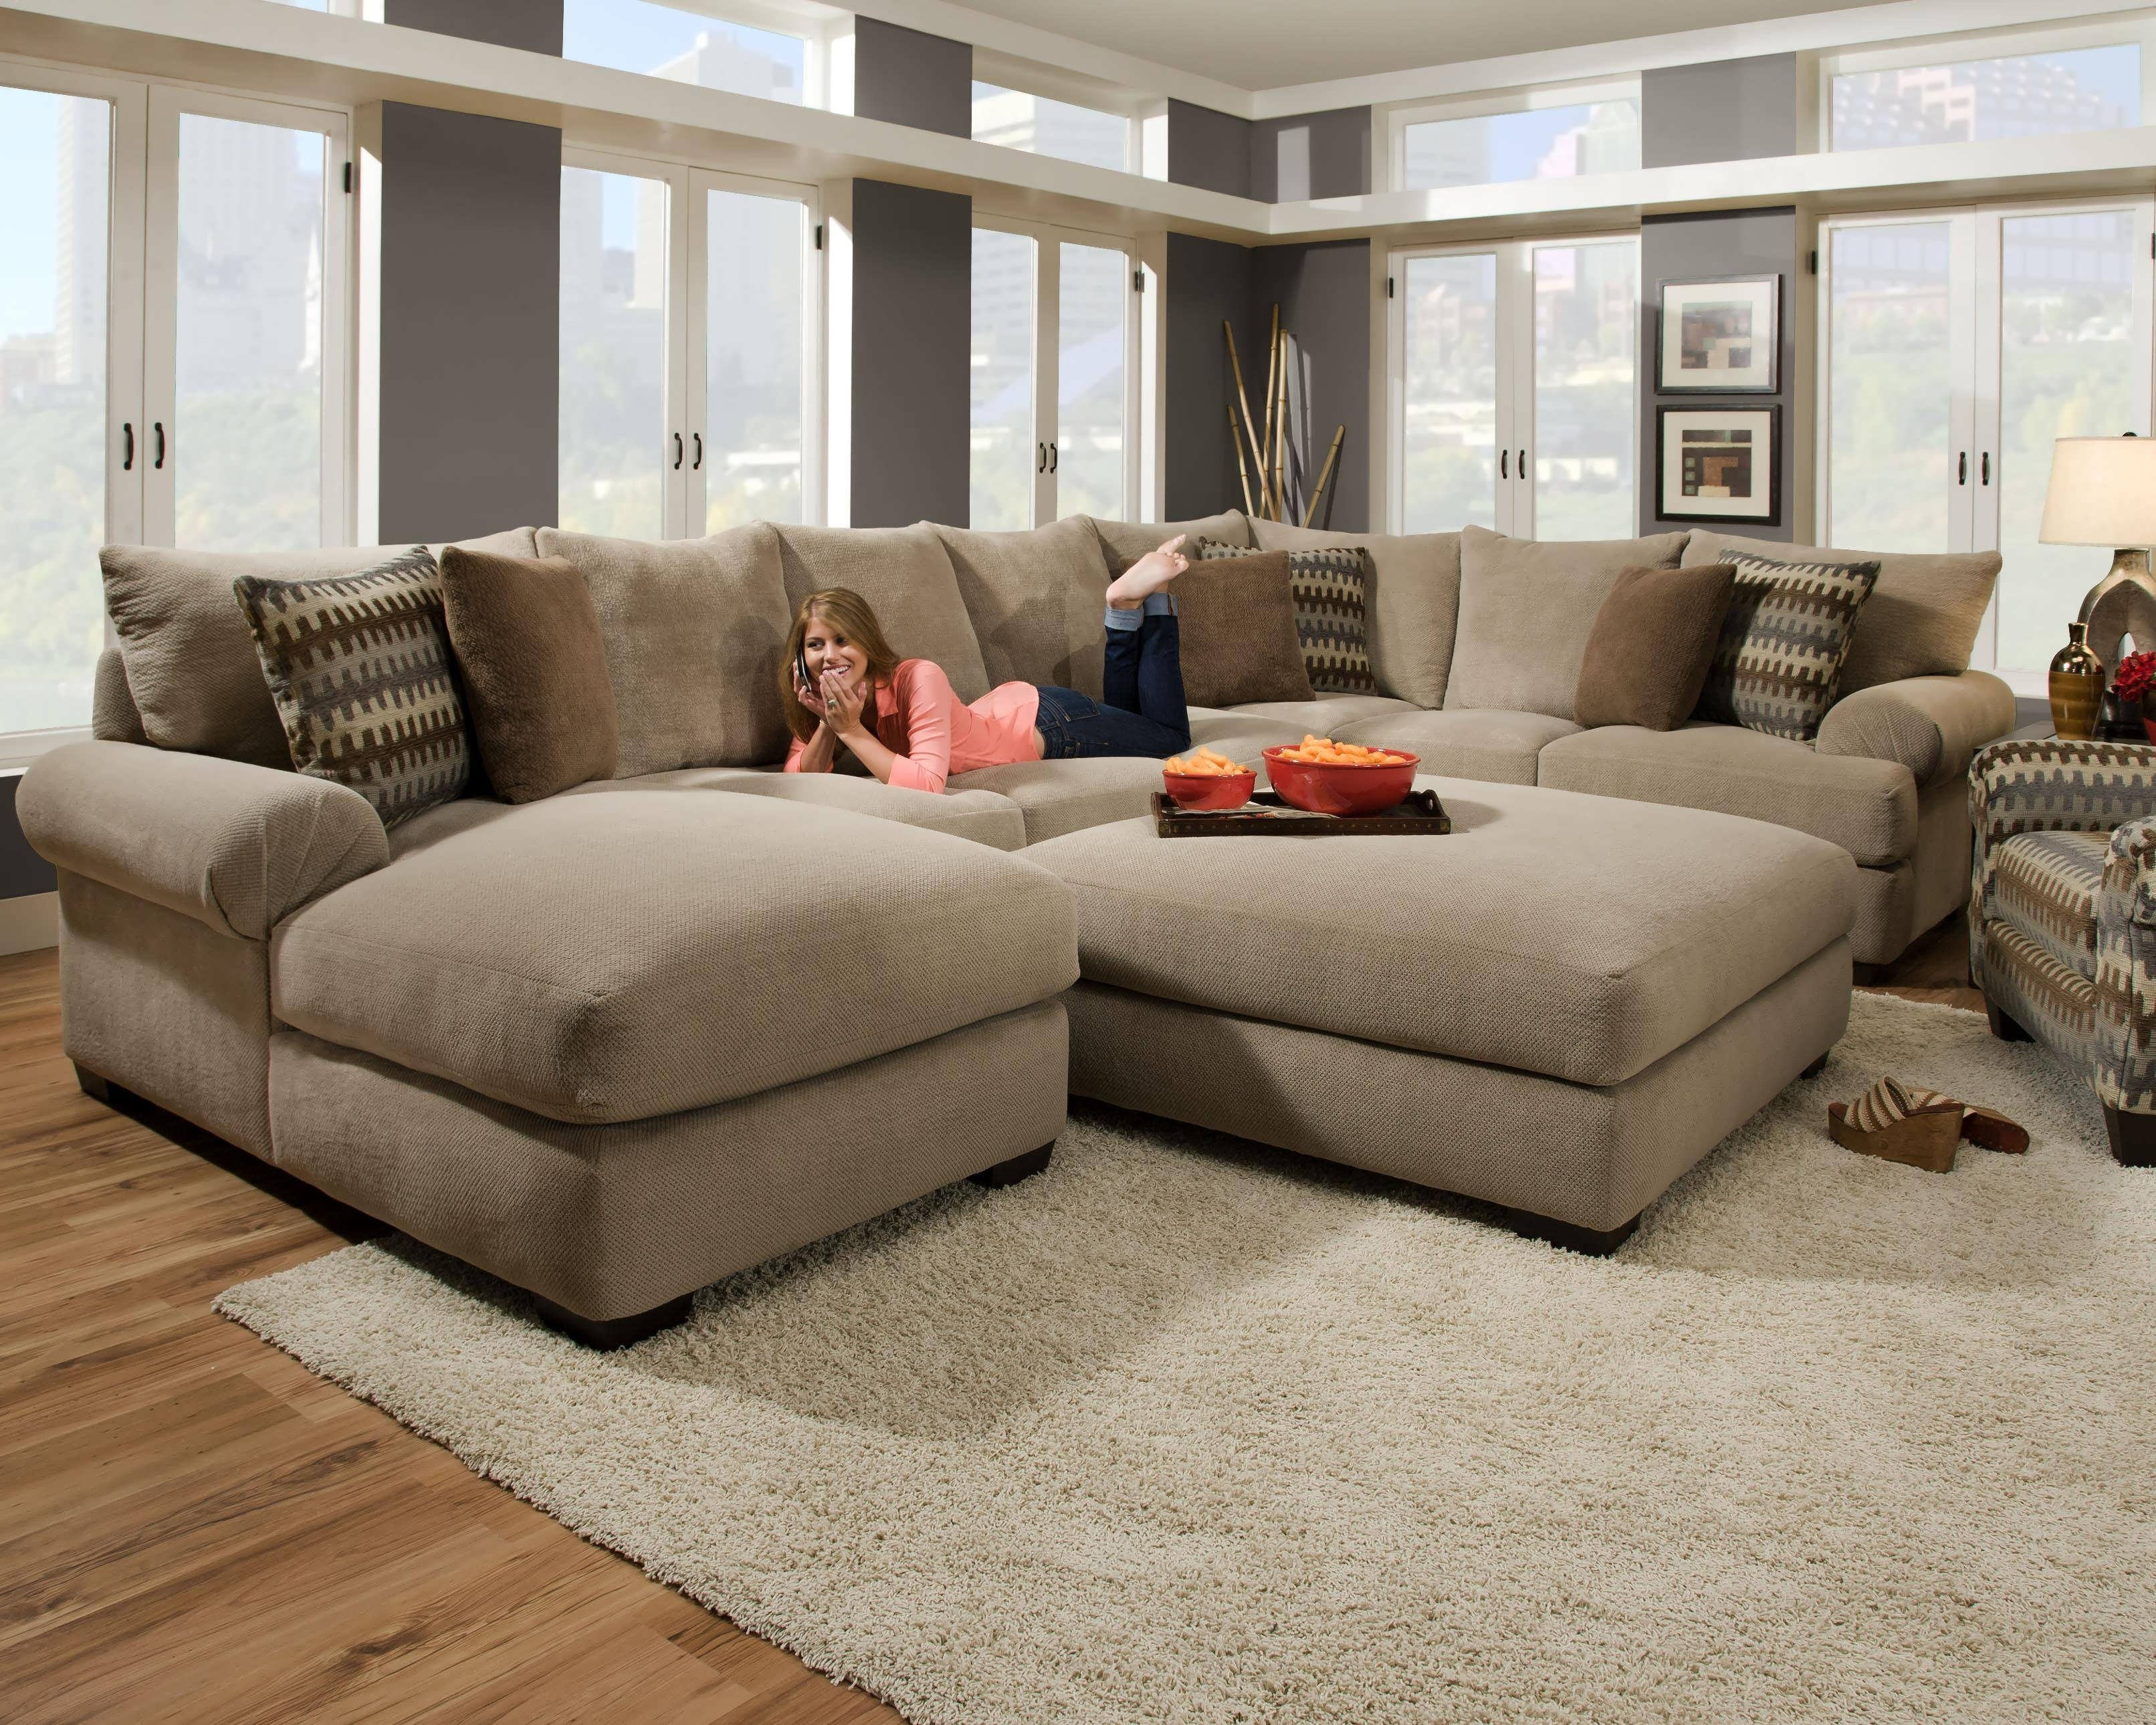 Wide Sofa Chairs With Regard To Most Current Chairs : Chairs Sofa Wide Accent Chair Room Comfortablenal Leather (View 17 of 20)